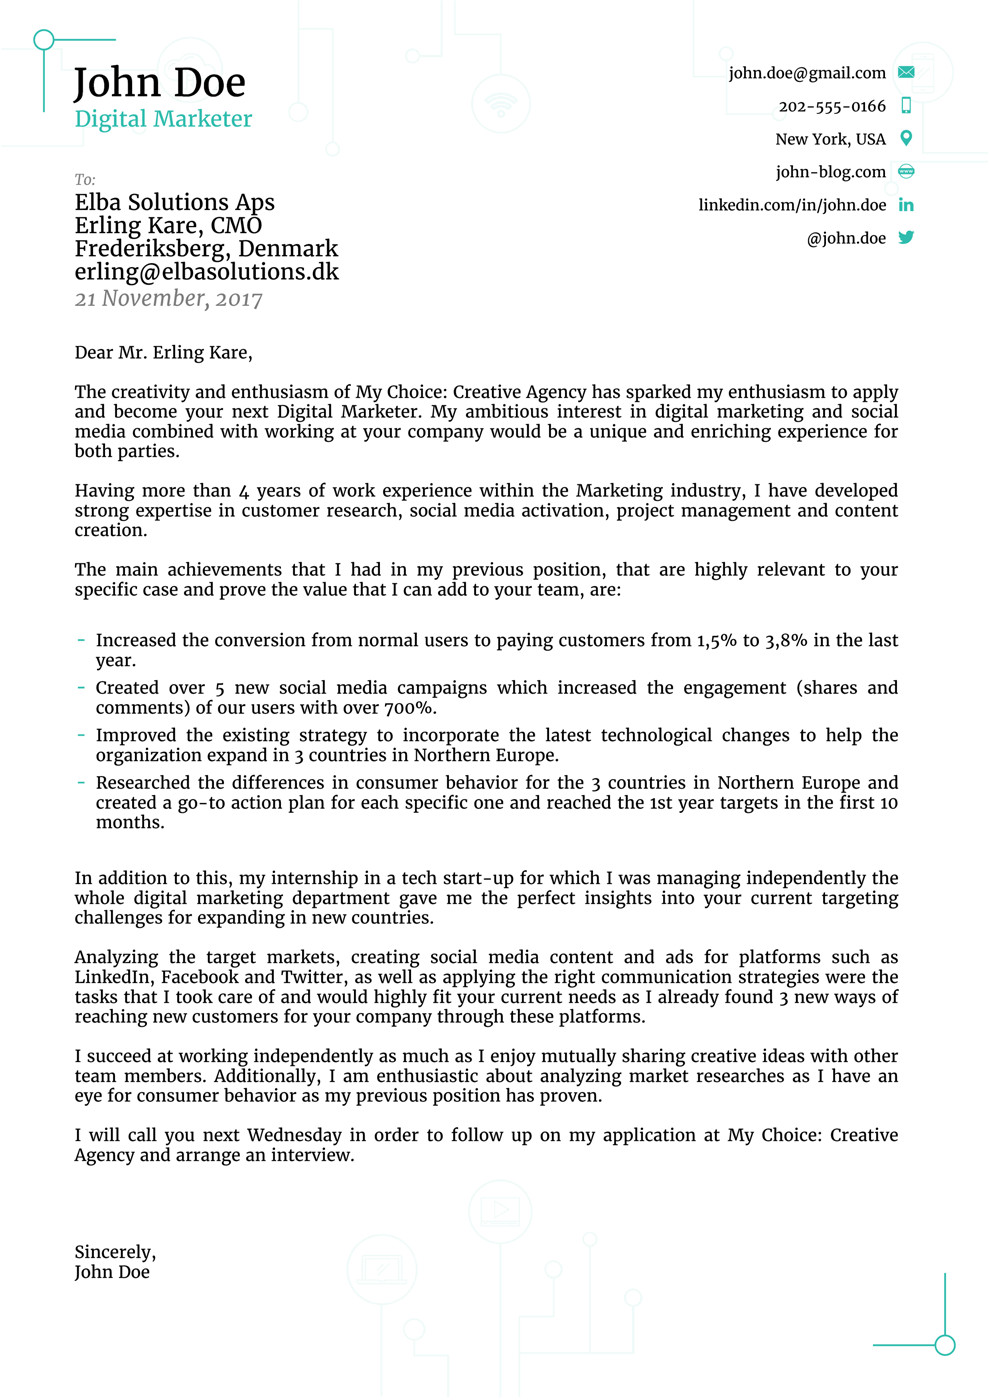 Modern Cover Letter Template 8 Cover Letter Templates for 2019 [that Hr Will Love ]